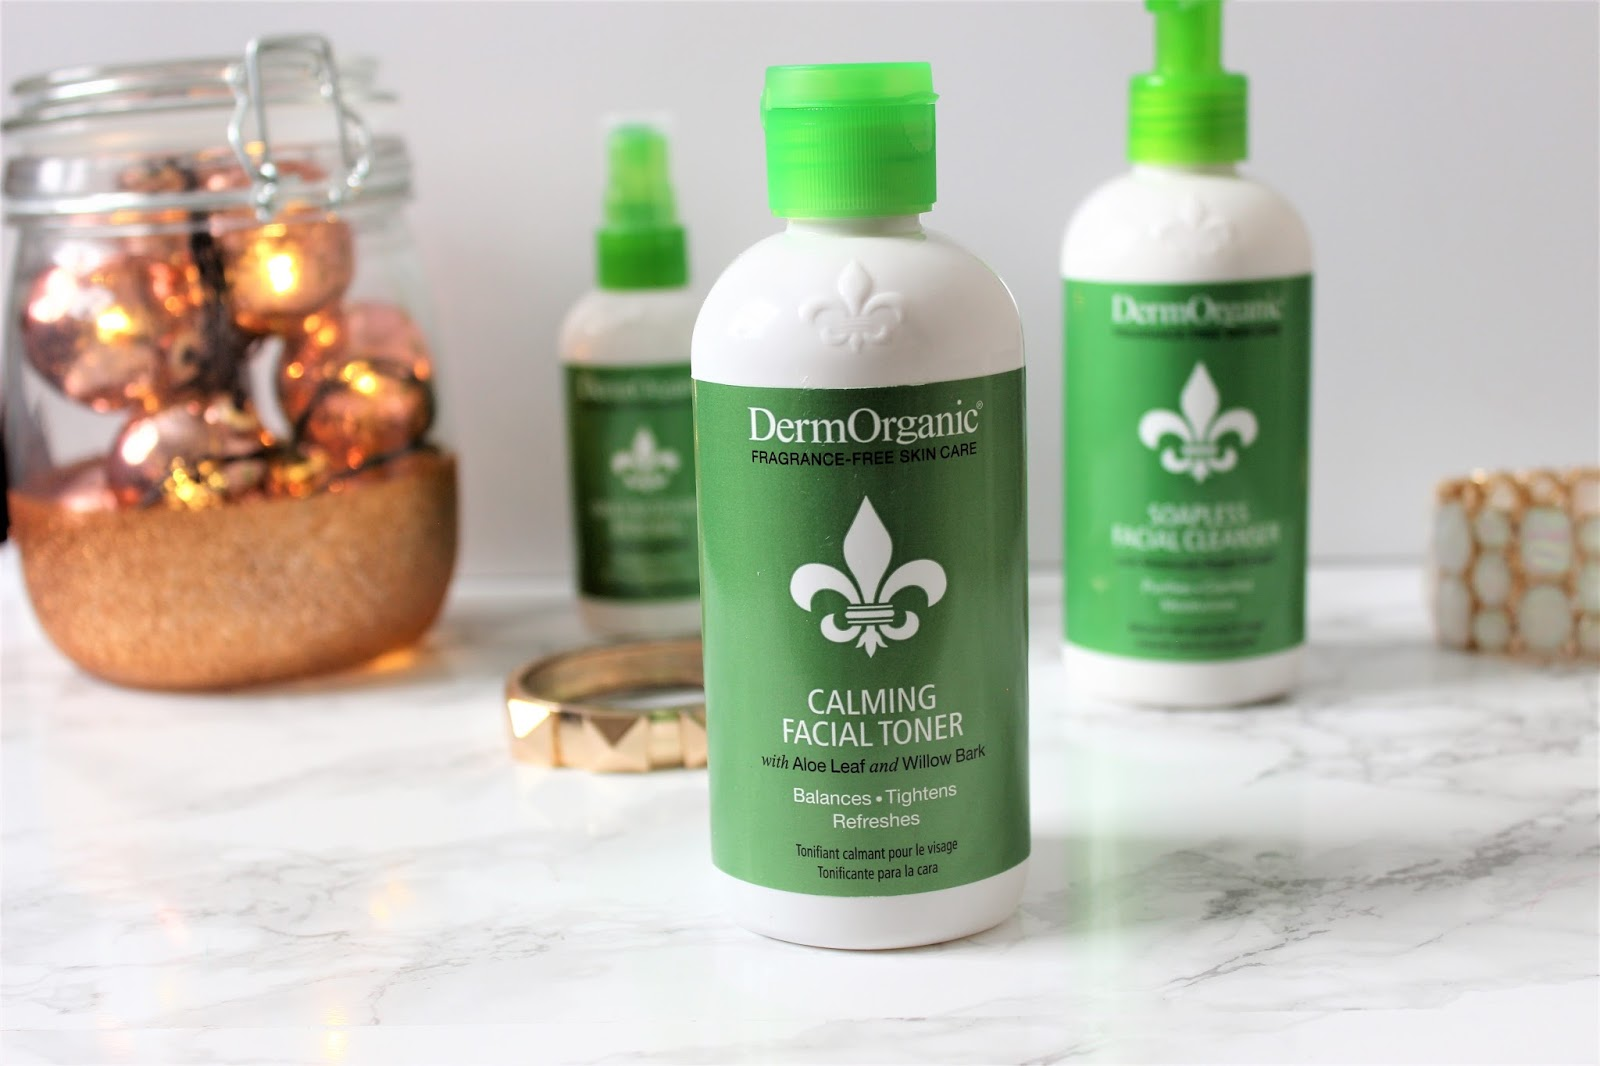 DermOrganic Vegan Skincare Review